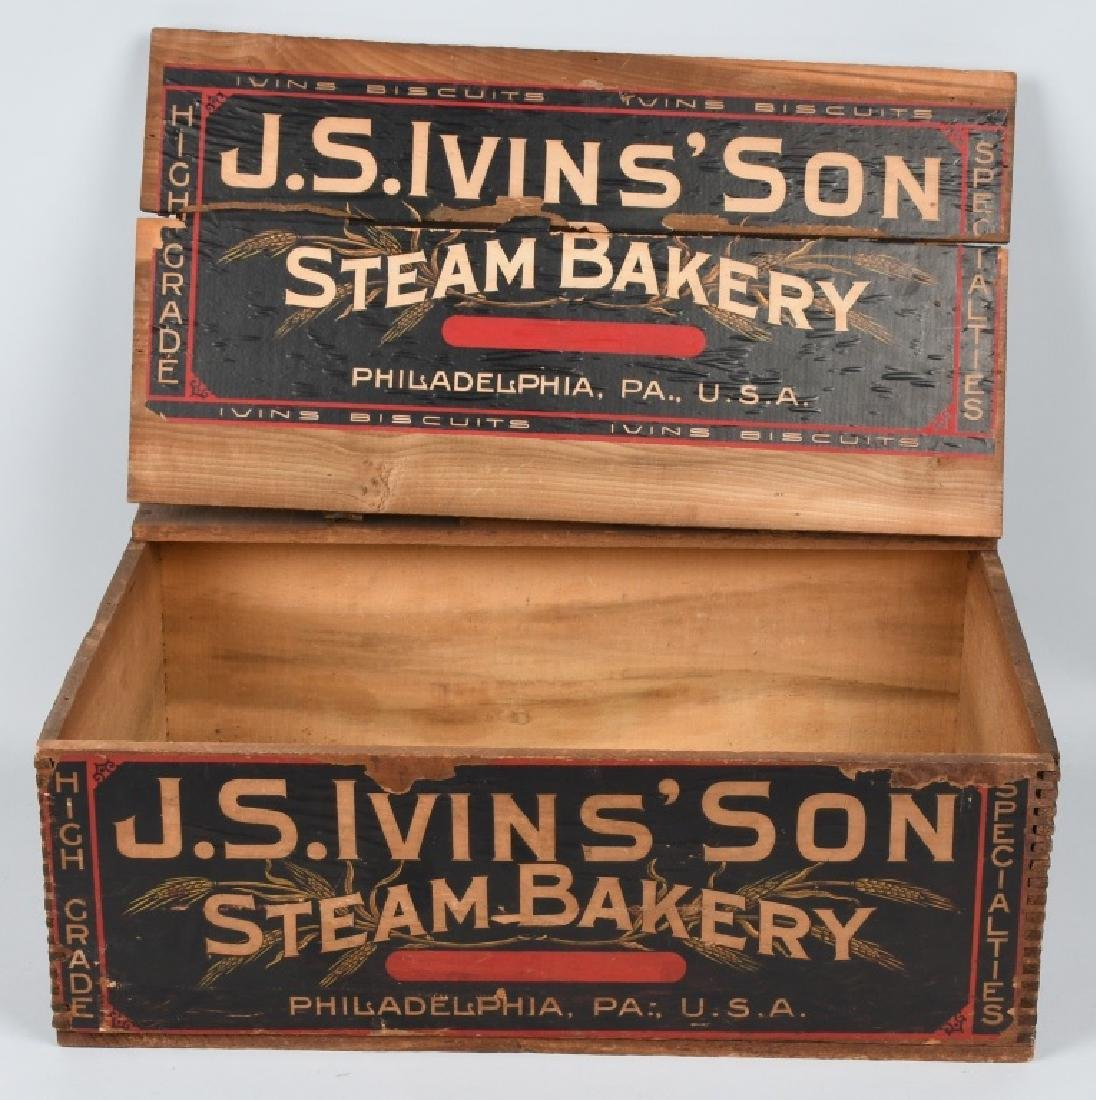 JS IVINS' SONS STEAM BAKERY WOOD CRATE